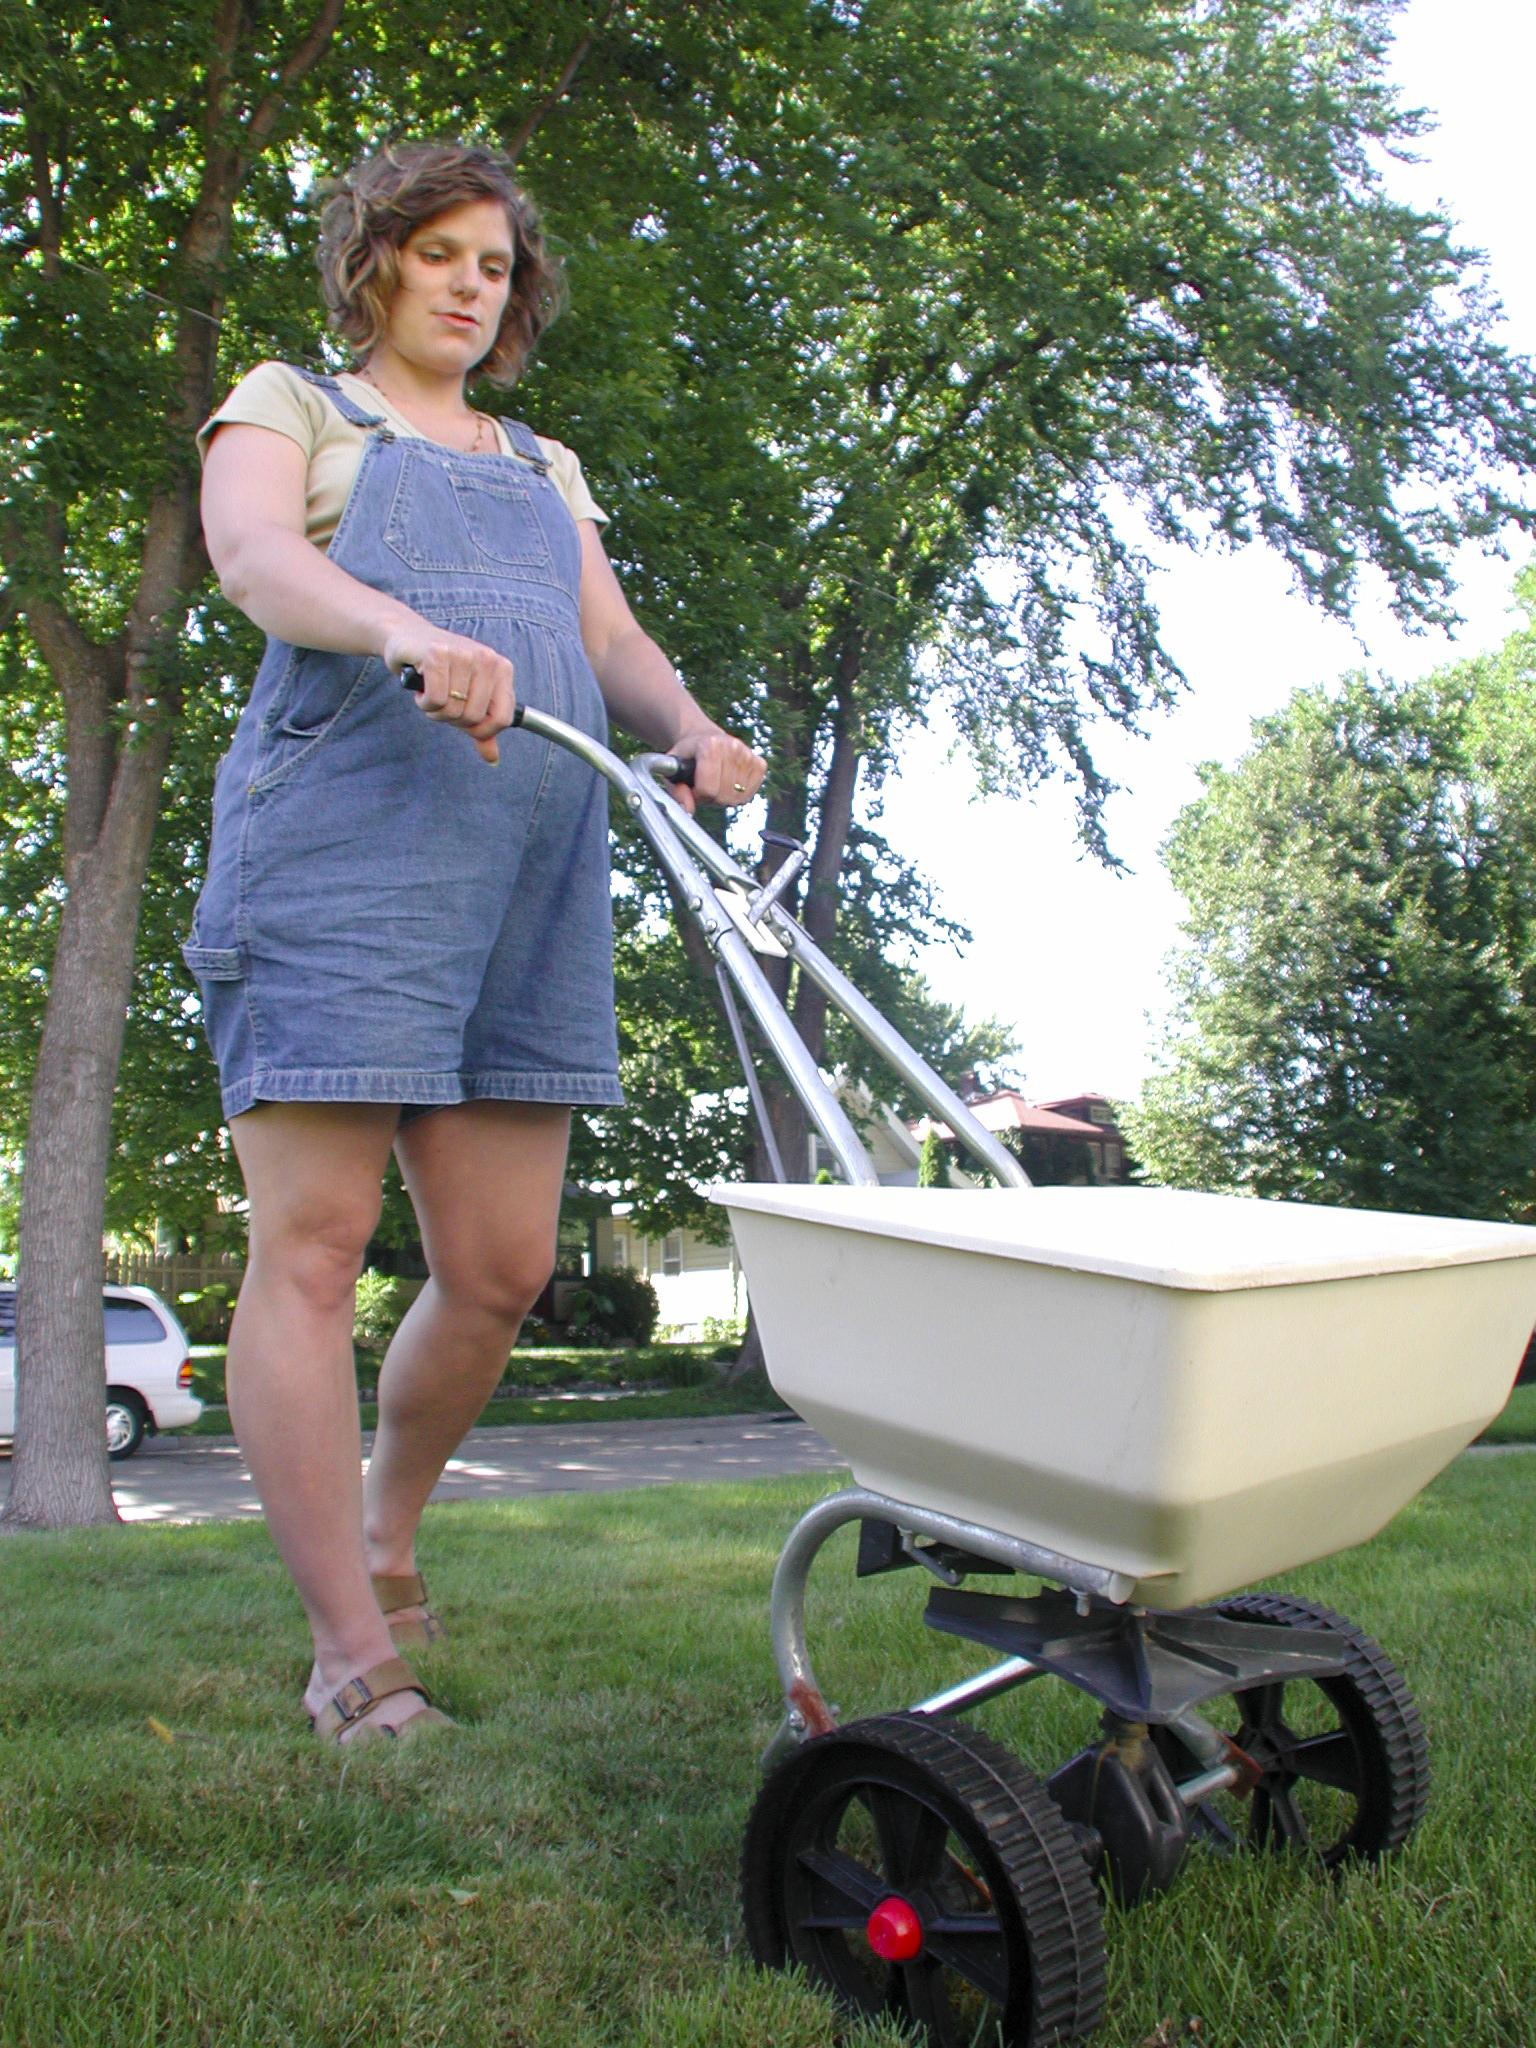 Lawn Care - Fertilizing